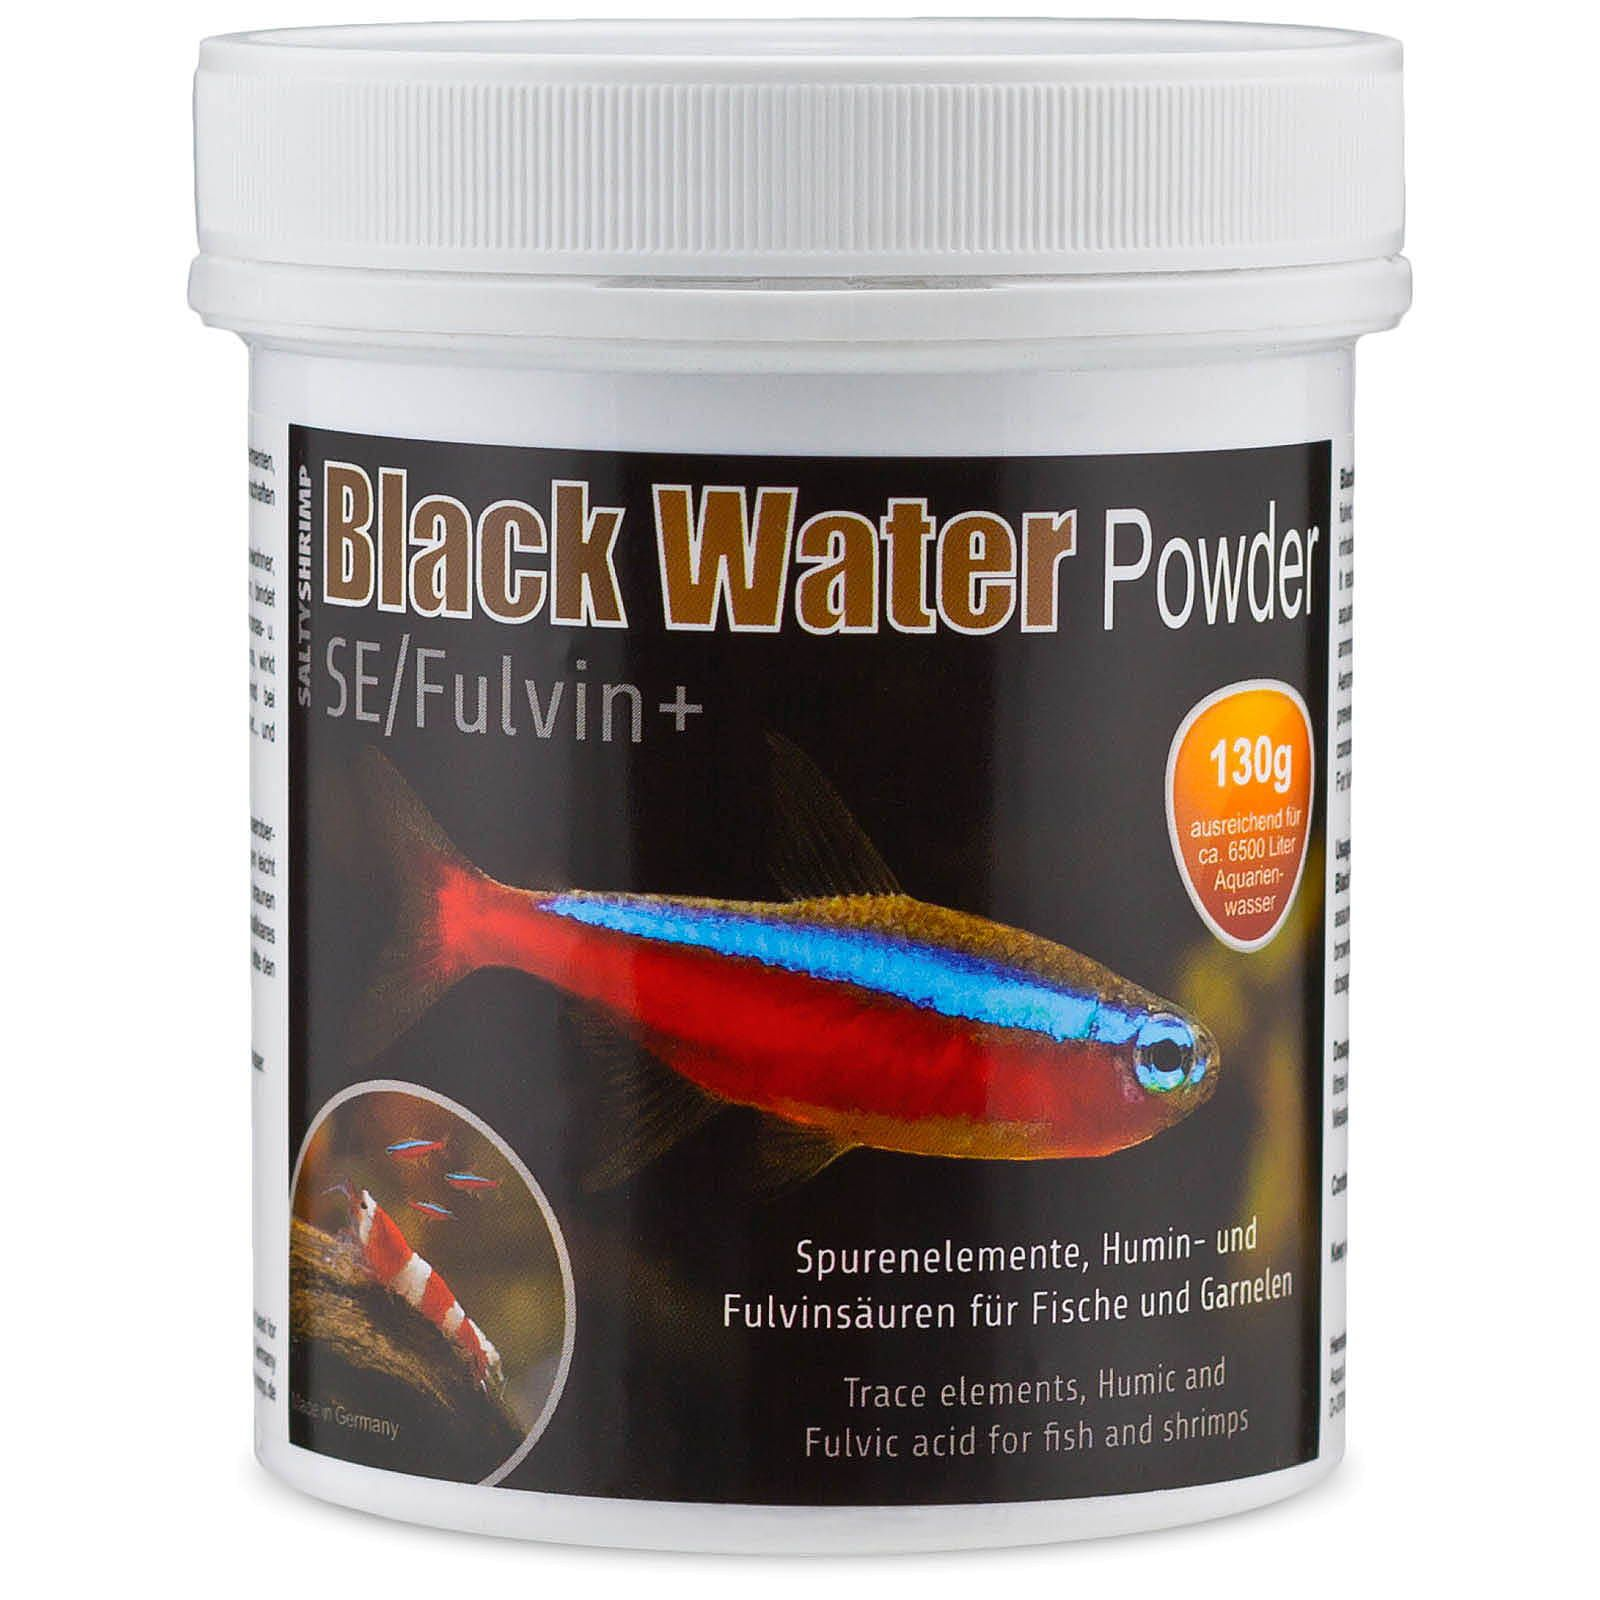 SaltyShrimp - Black Water Powder SE/Fulvin+ - 65 g